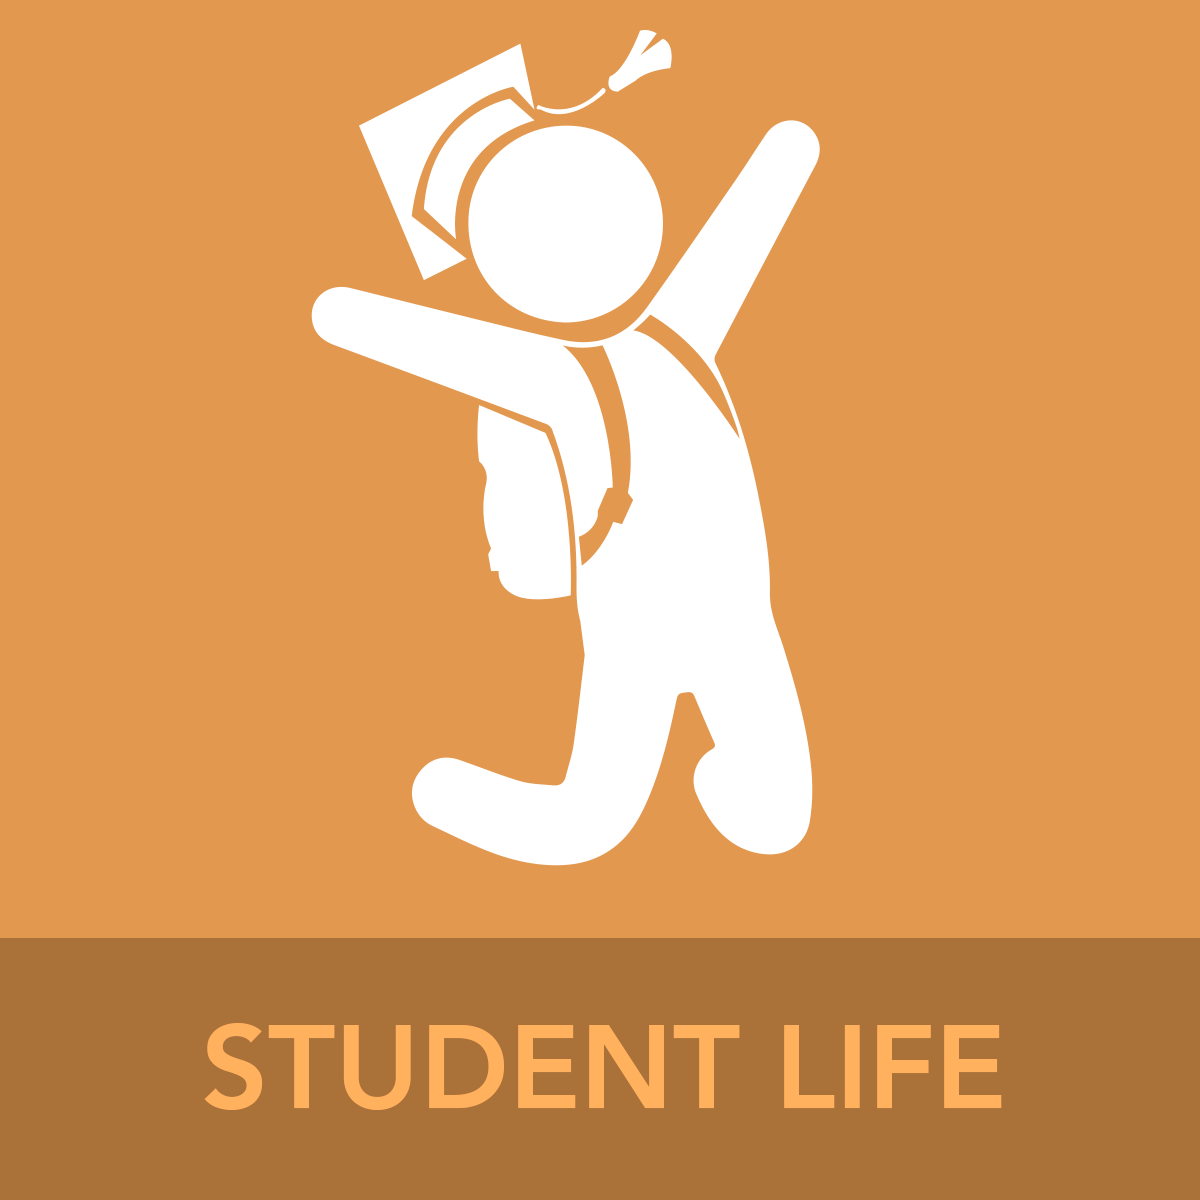 STUDENT LIFE ICON BUTTON